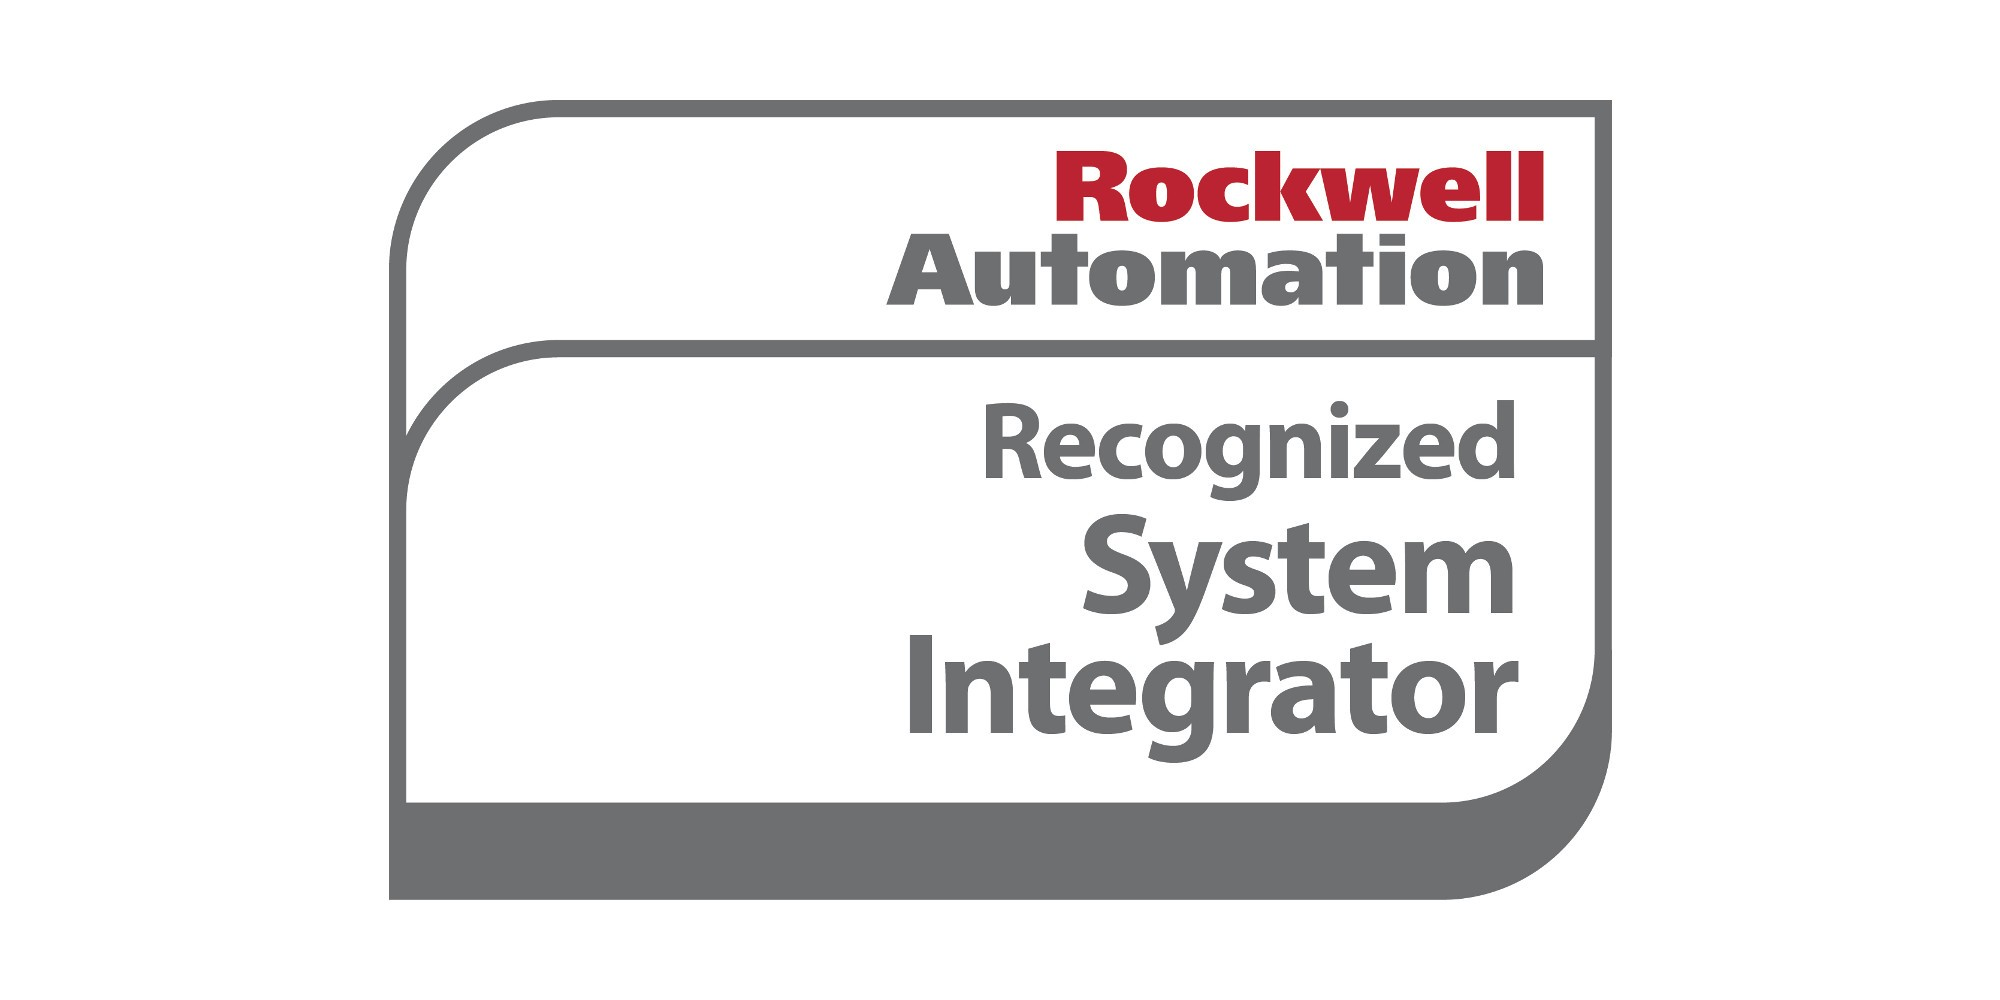 System Integrator of Rockwell Automation